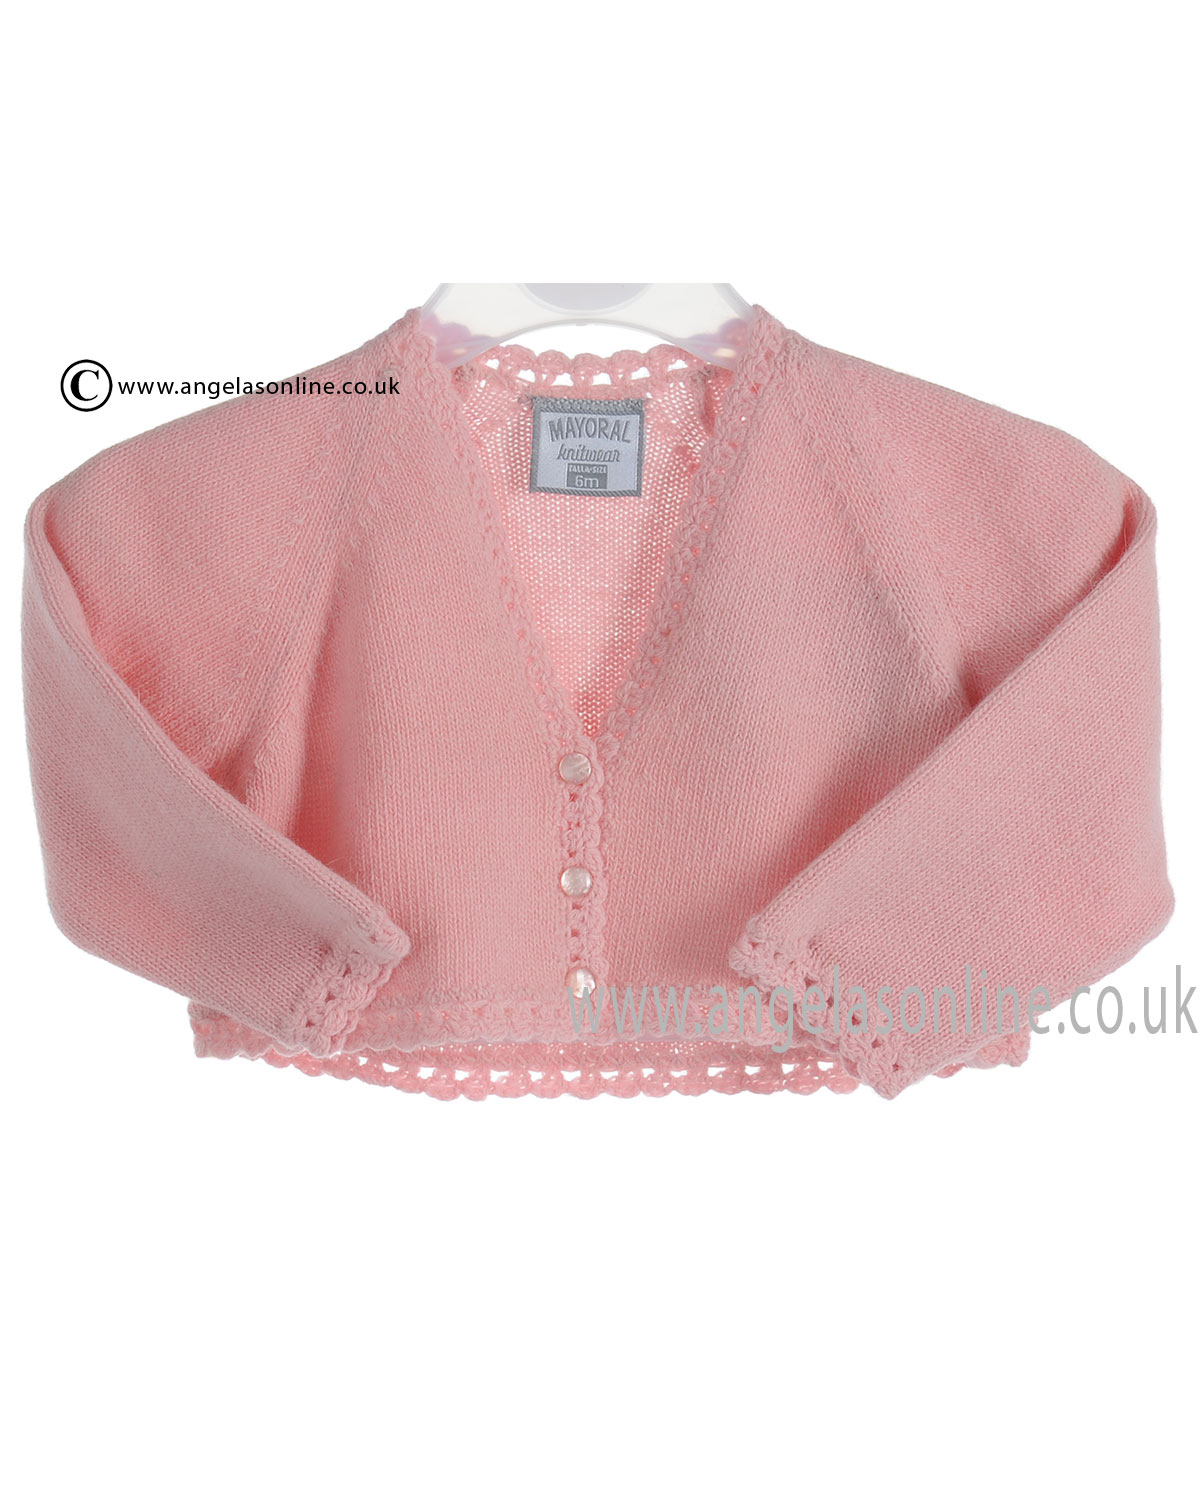 9bc6304f4 Mayoral Baby Girls Pink Wool Knit Cardigan 2309 Now On Sale